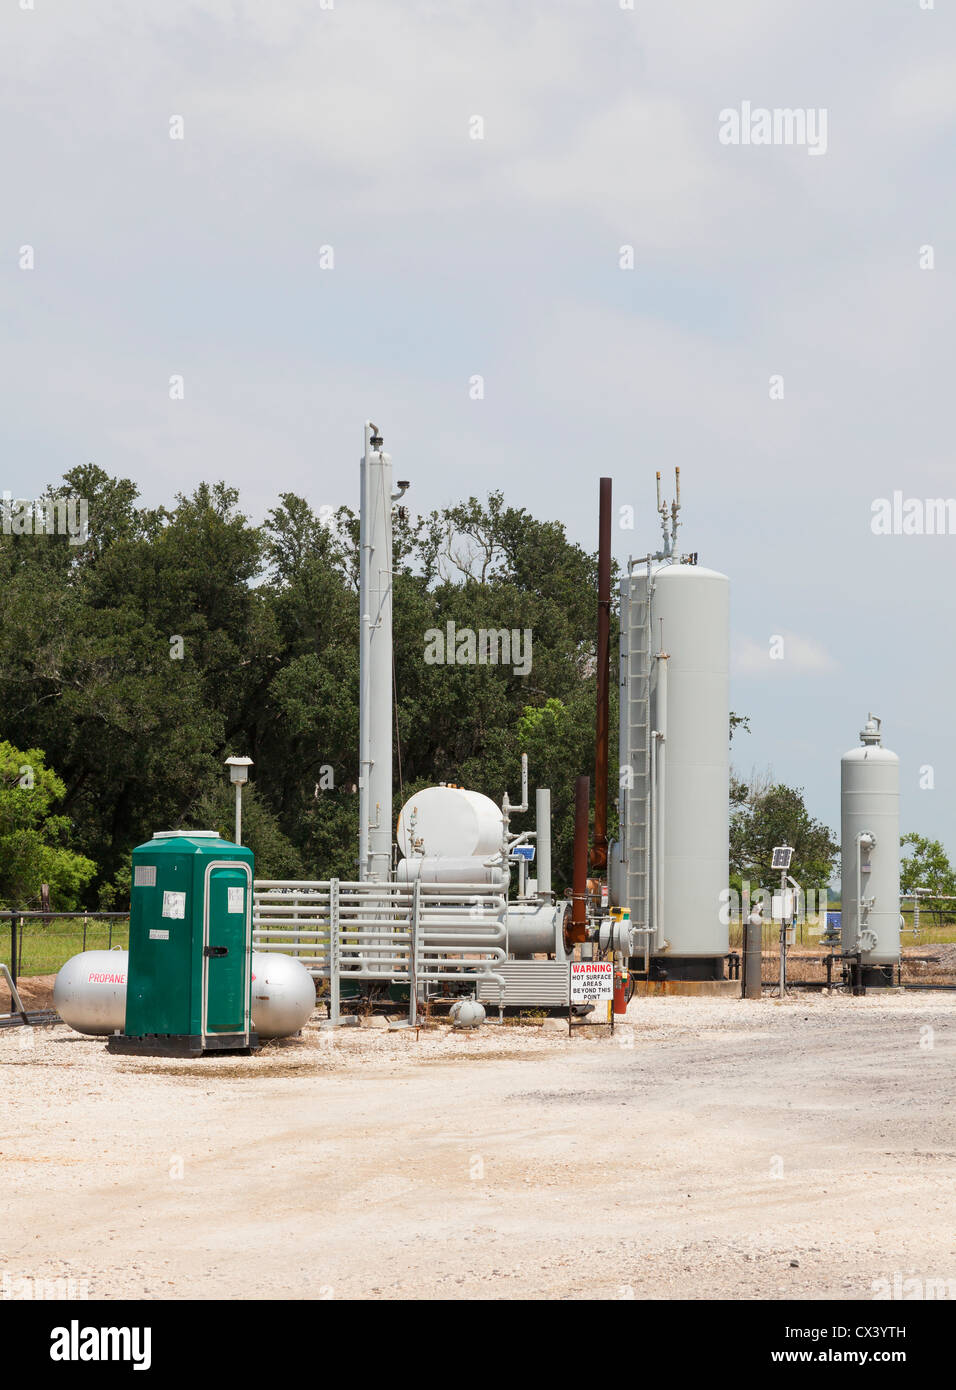 Remote crude oil pumping and truck loading facility for rural oil wells, showing flaring system - Stock Image